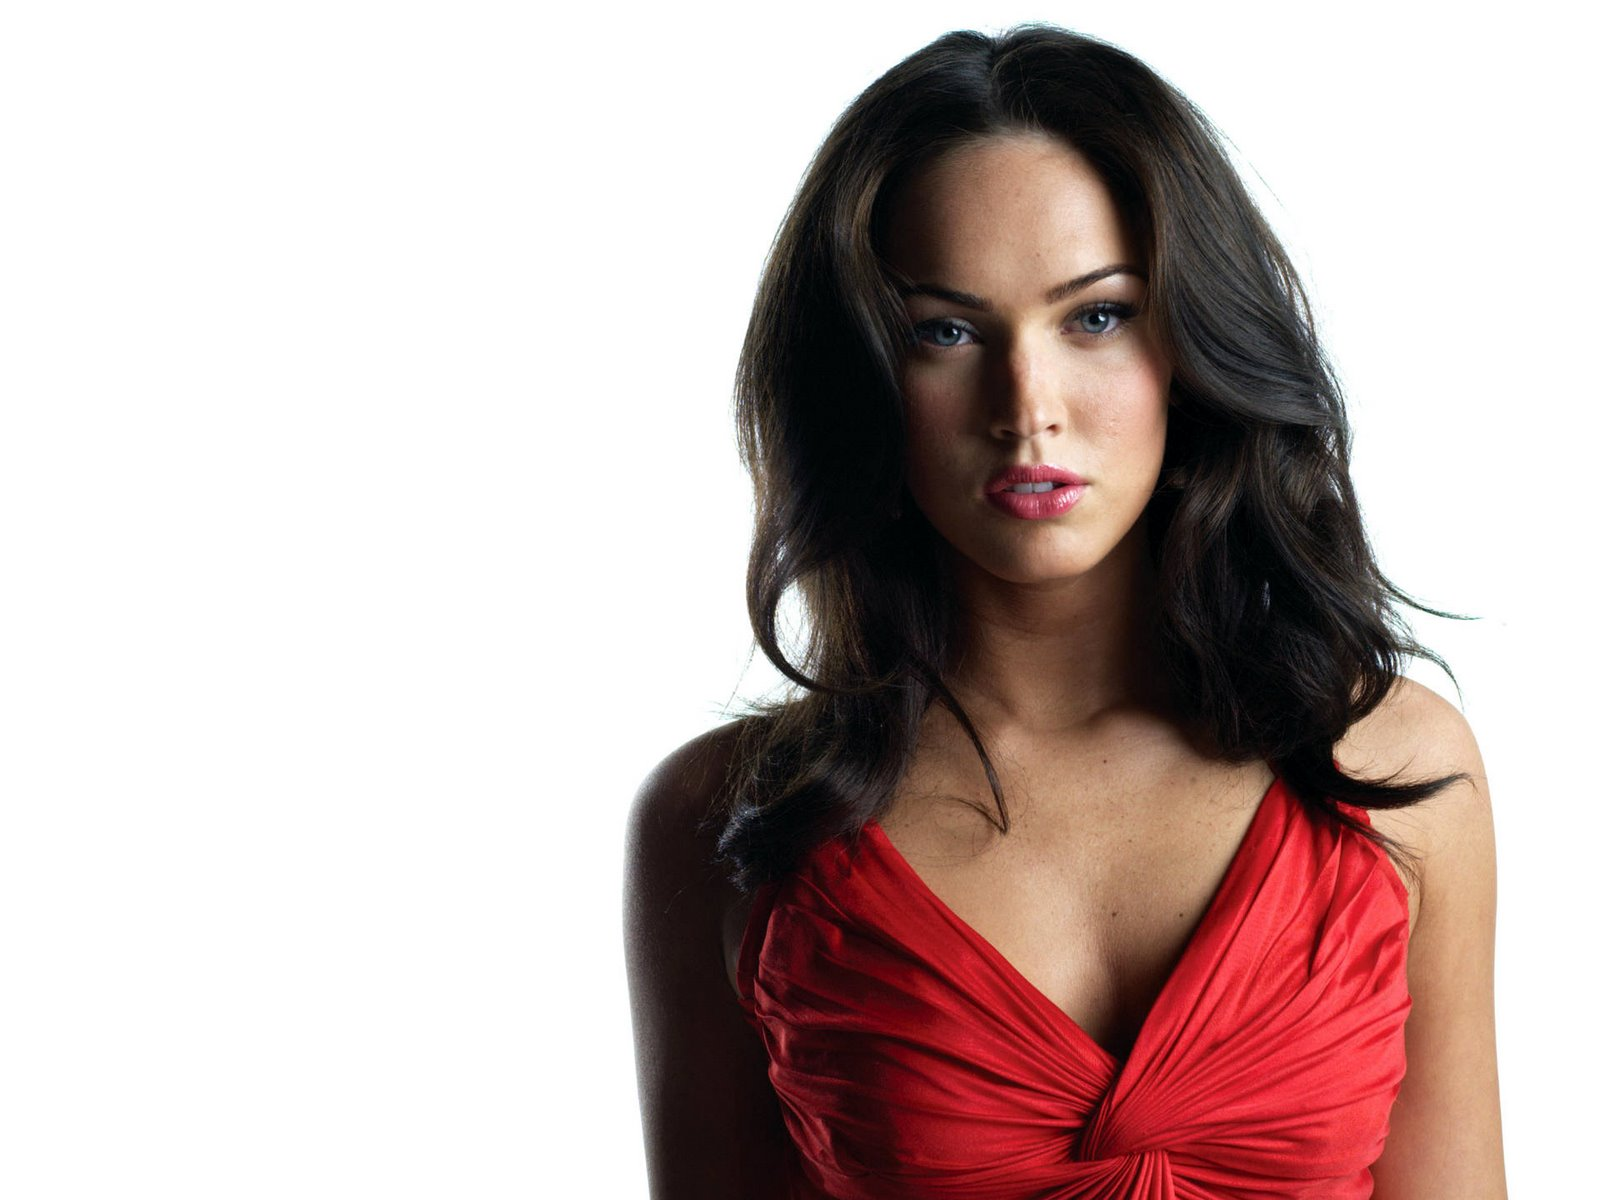 megan fox hot wallpapers collection